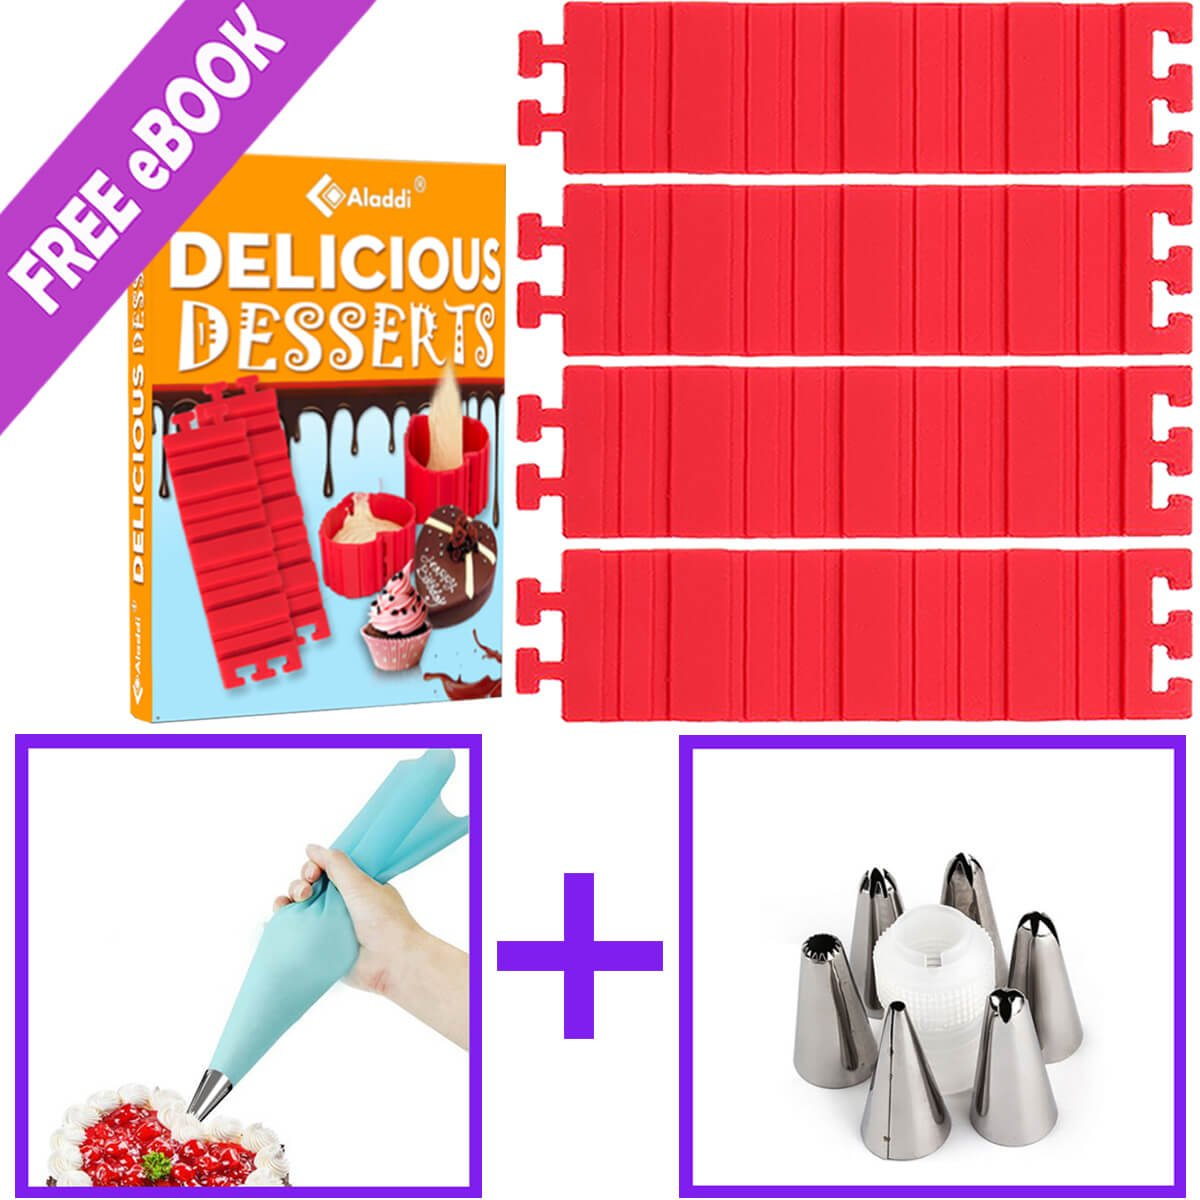 Punchs Steel OTHER 11 Best Silicone Mold Magic Snake and Cake Decorating Tips Combo, DIY Baking Mould Tool Design Your Pastry Dessert with Any Pan Shape, 4 Pcs/Lo, Muffin Cups